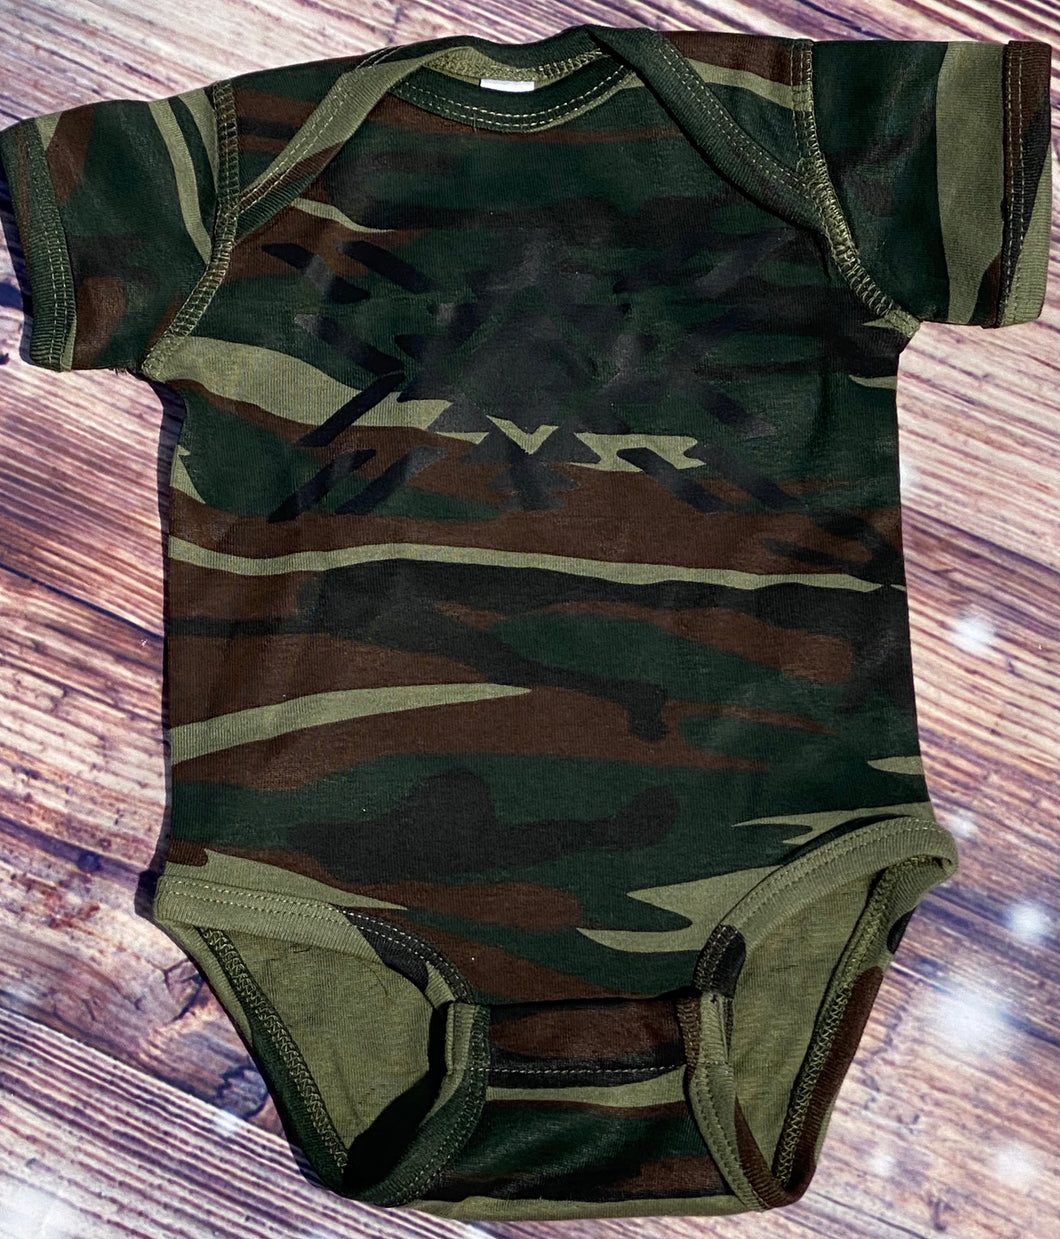 KIDS Camo Aztec graphic onesie or tee - Mavictoria Designs Hot Press Express